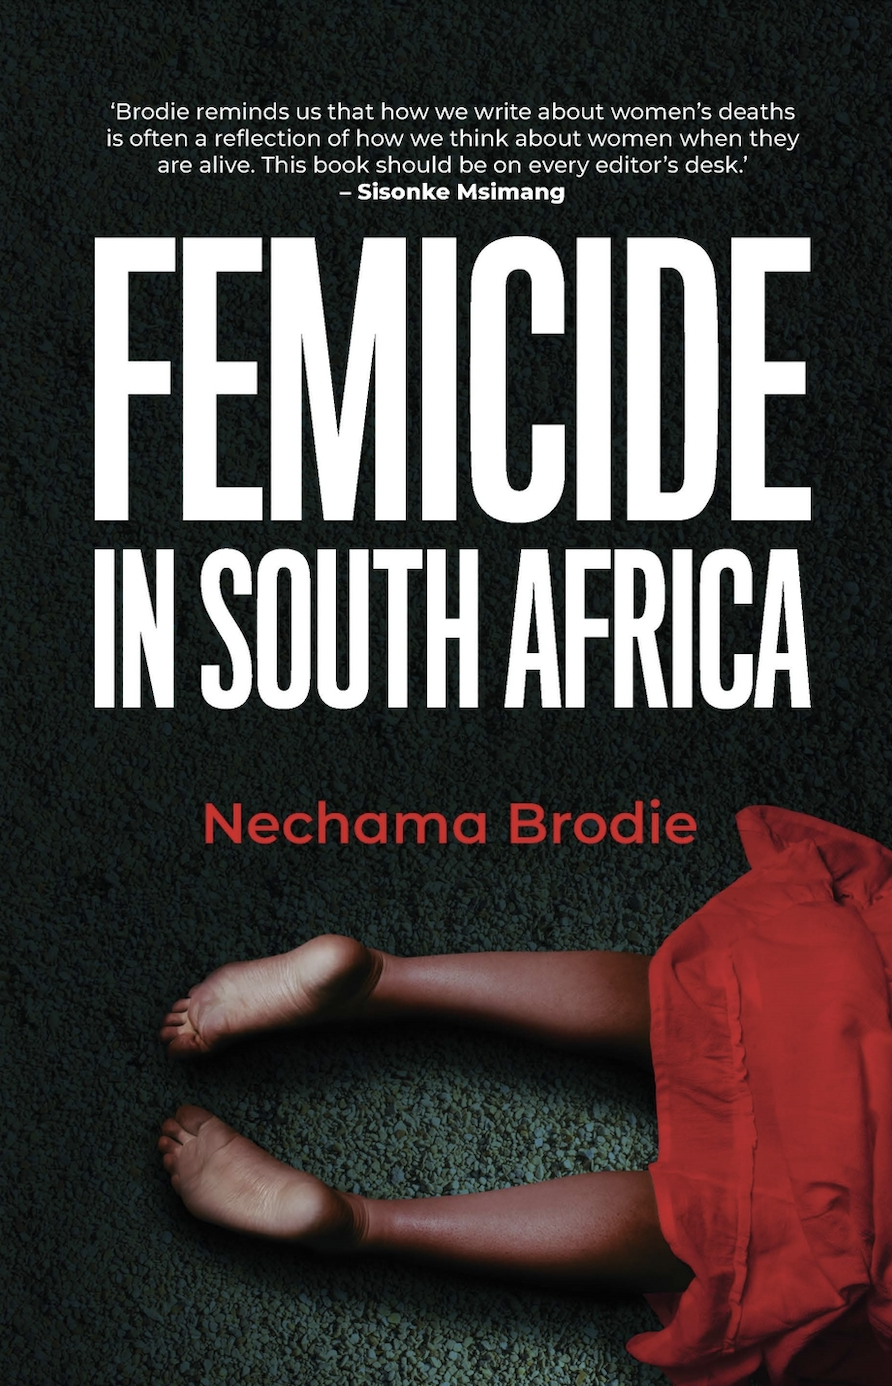 'Femicide in South Africa' cover